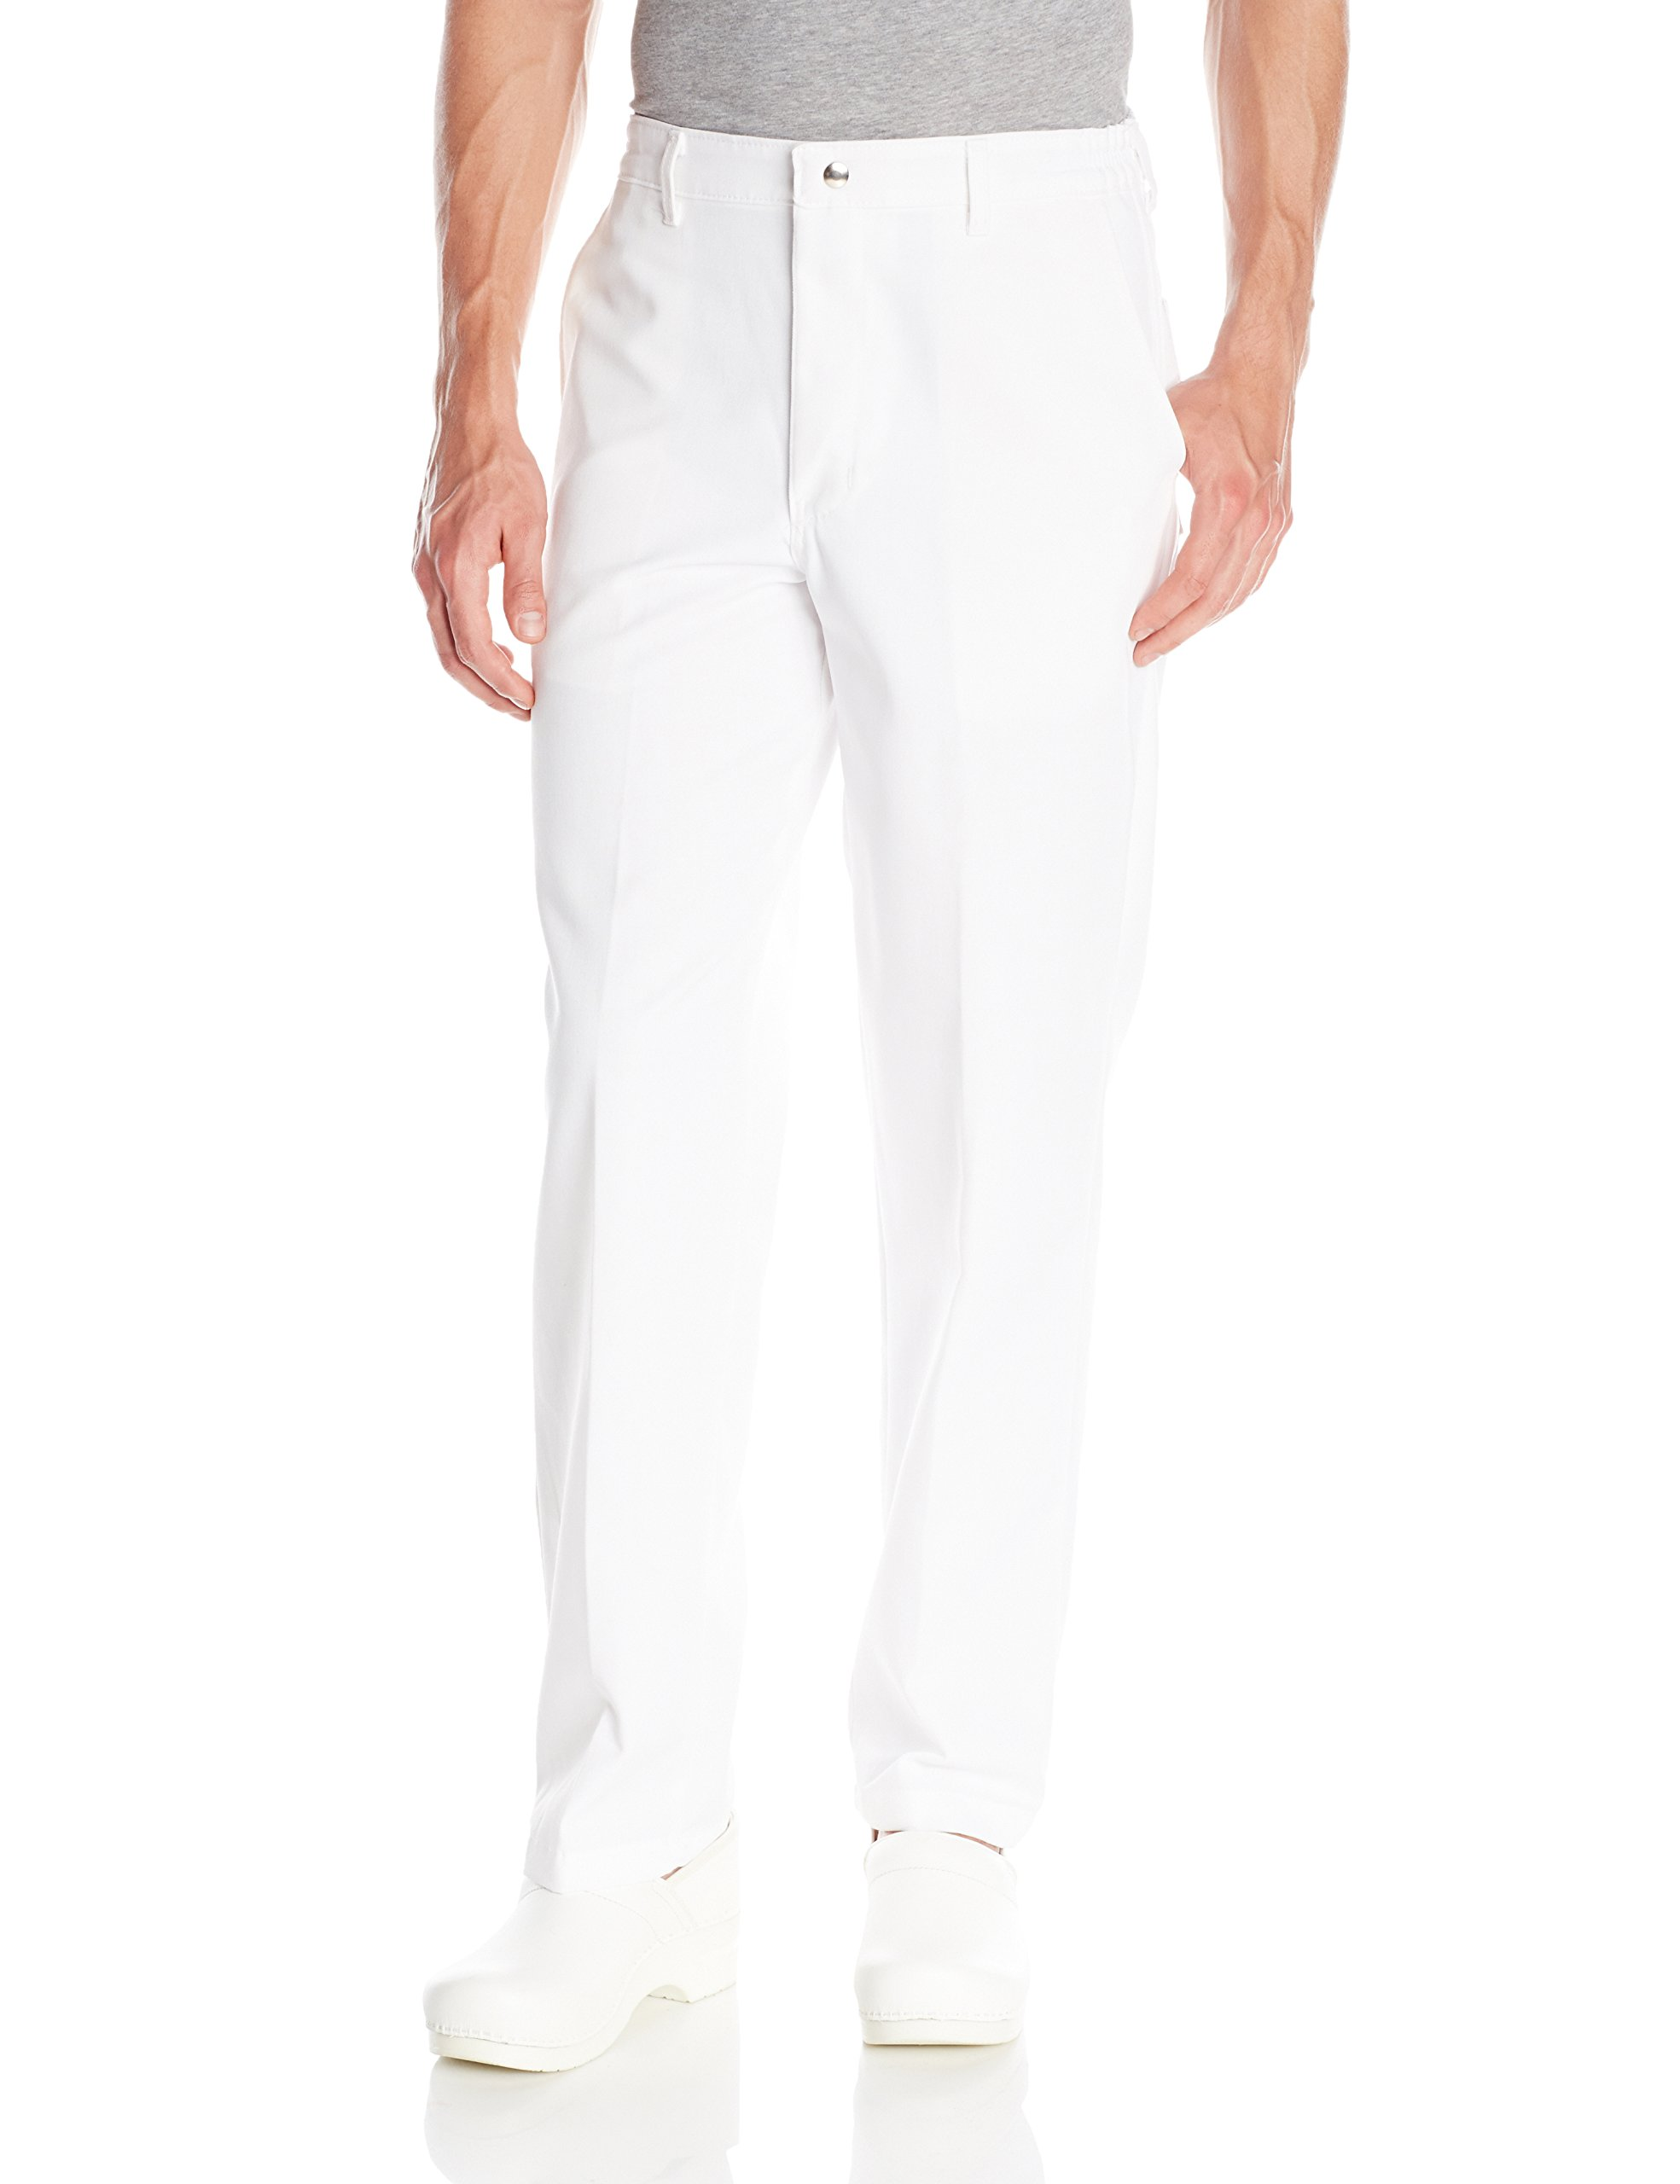 Chef Designs Men's Chef Pant, White, 34x32 by Chef Designs